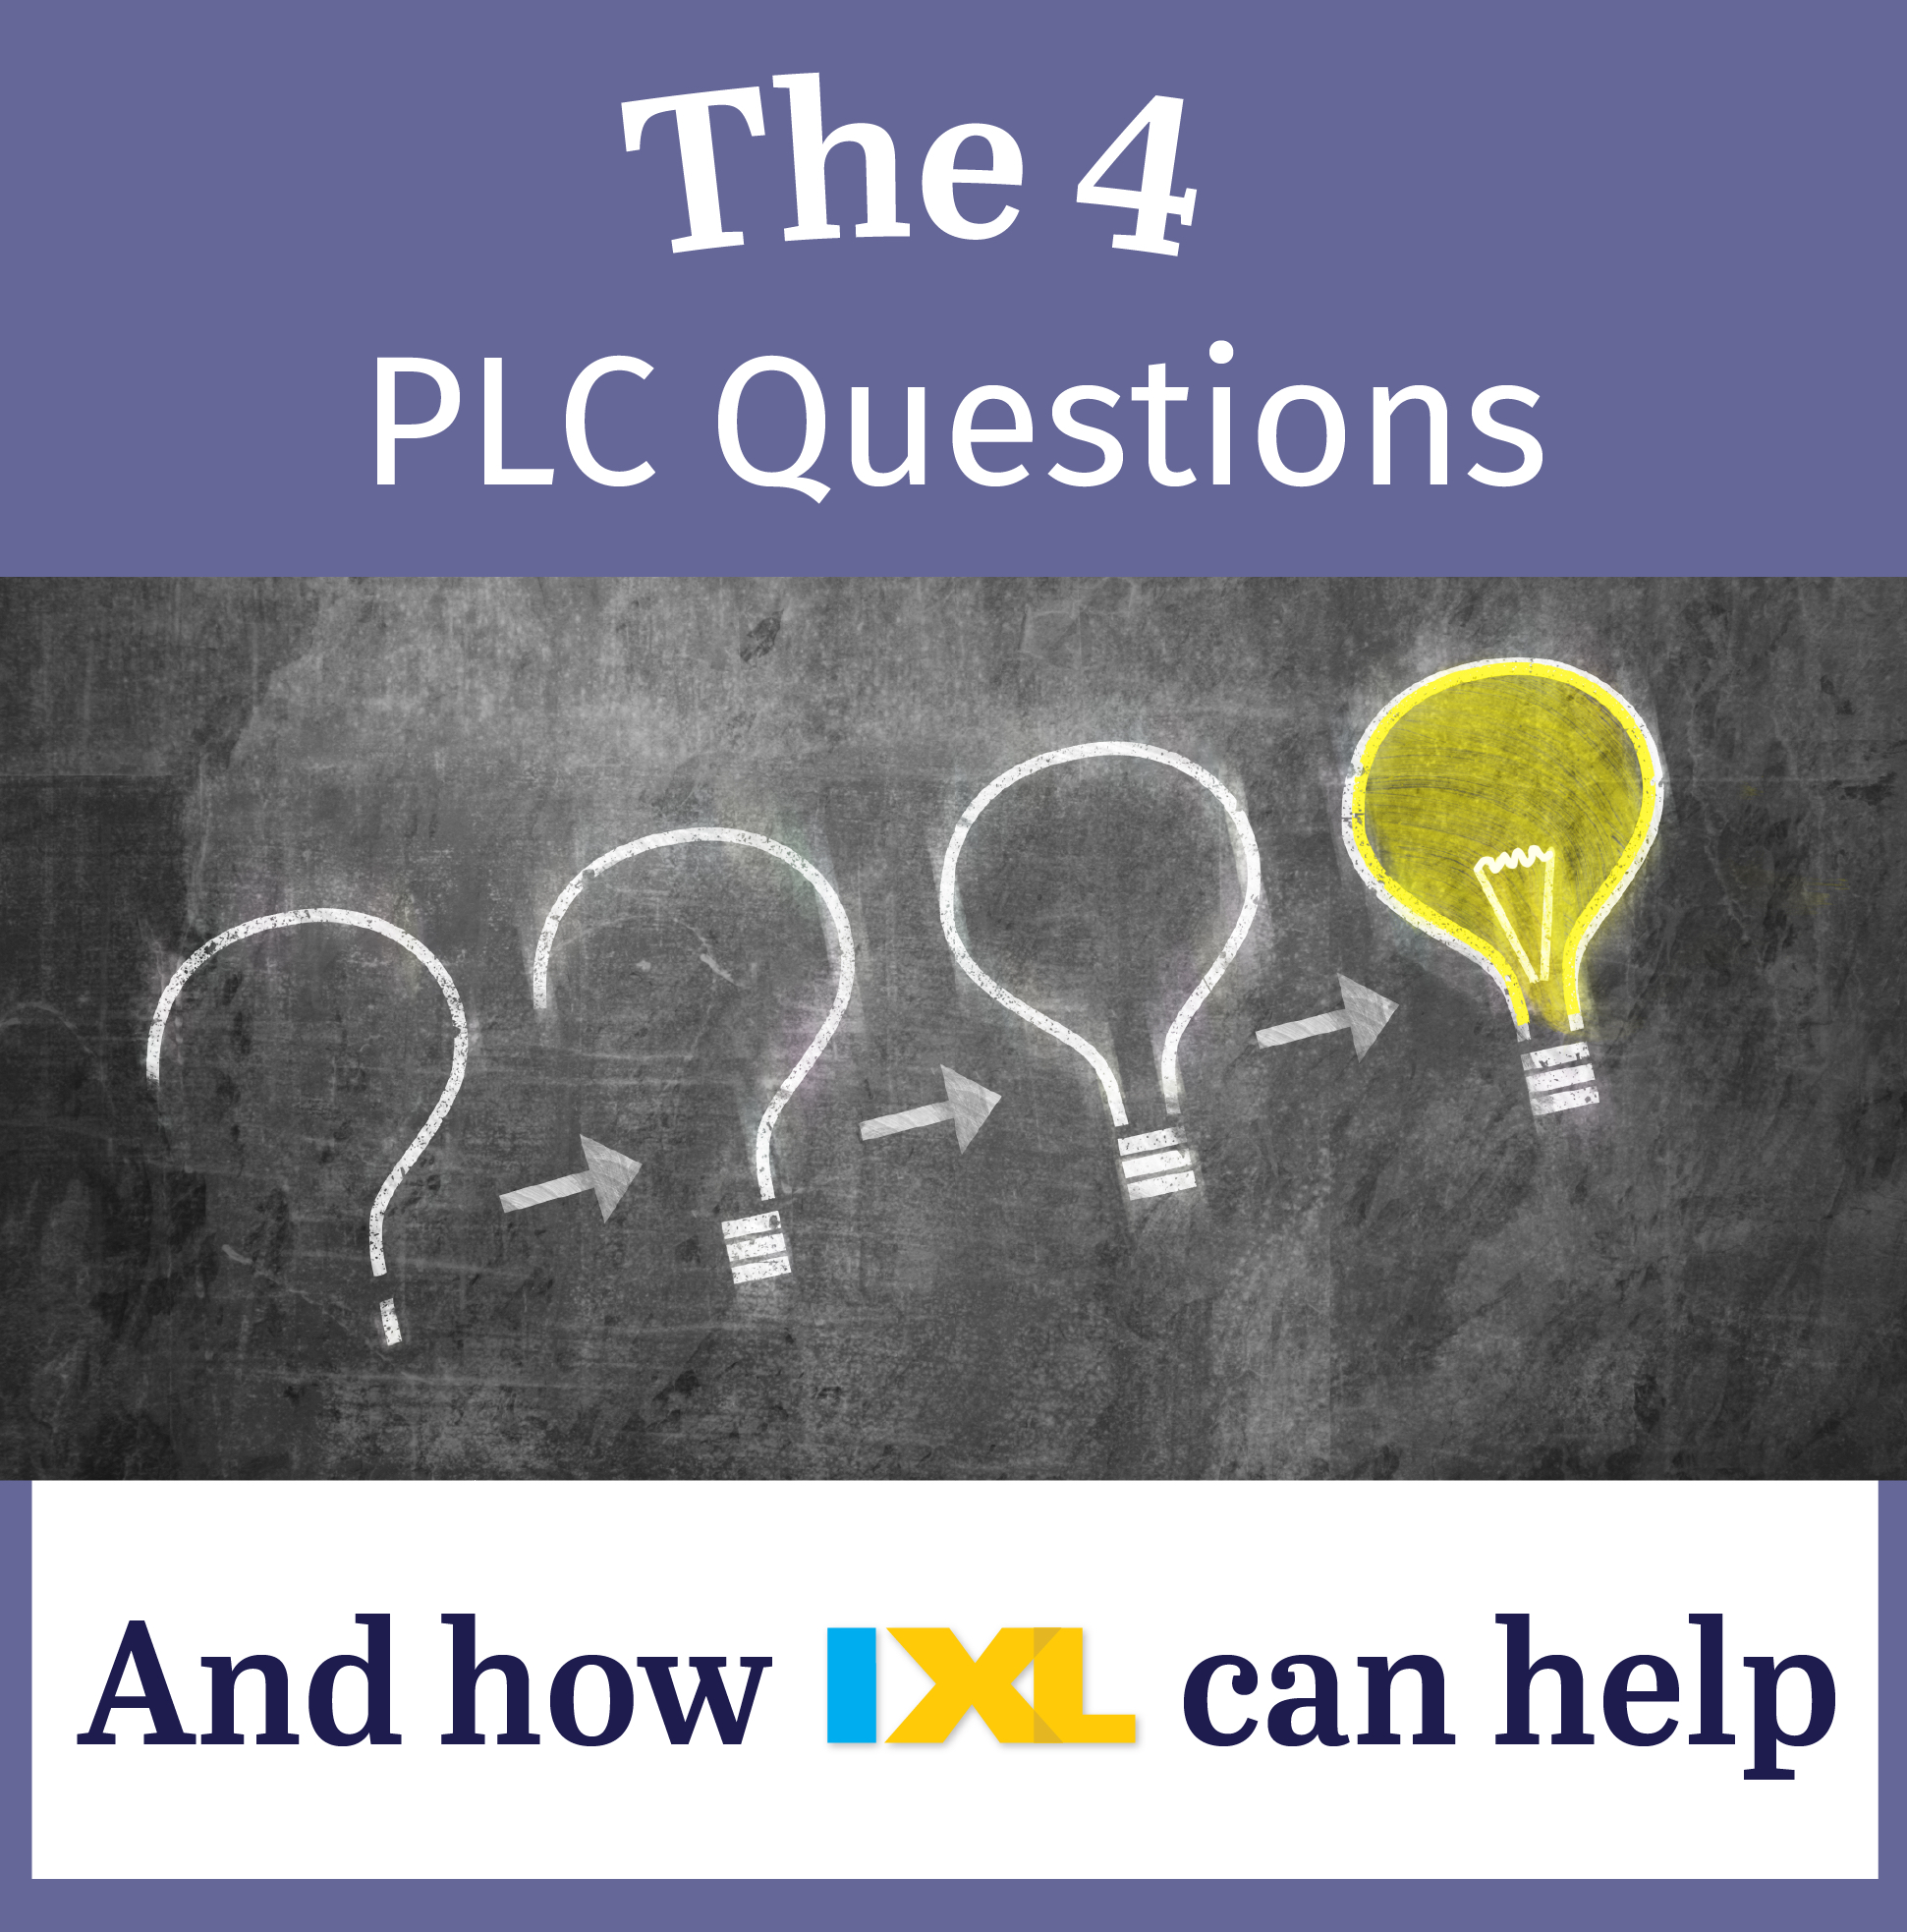 Answering the 4 critical PLC questions